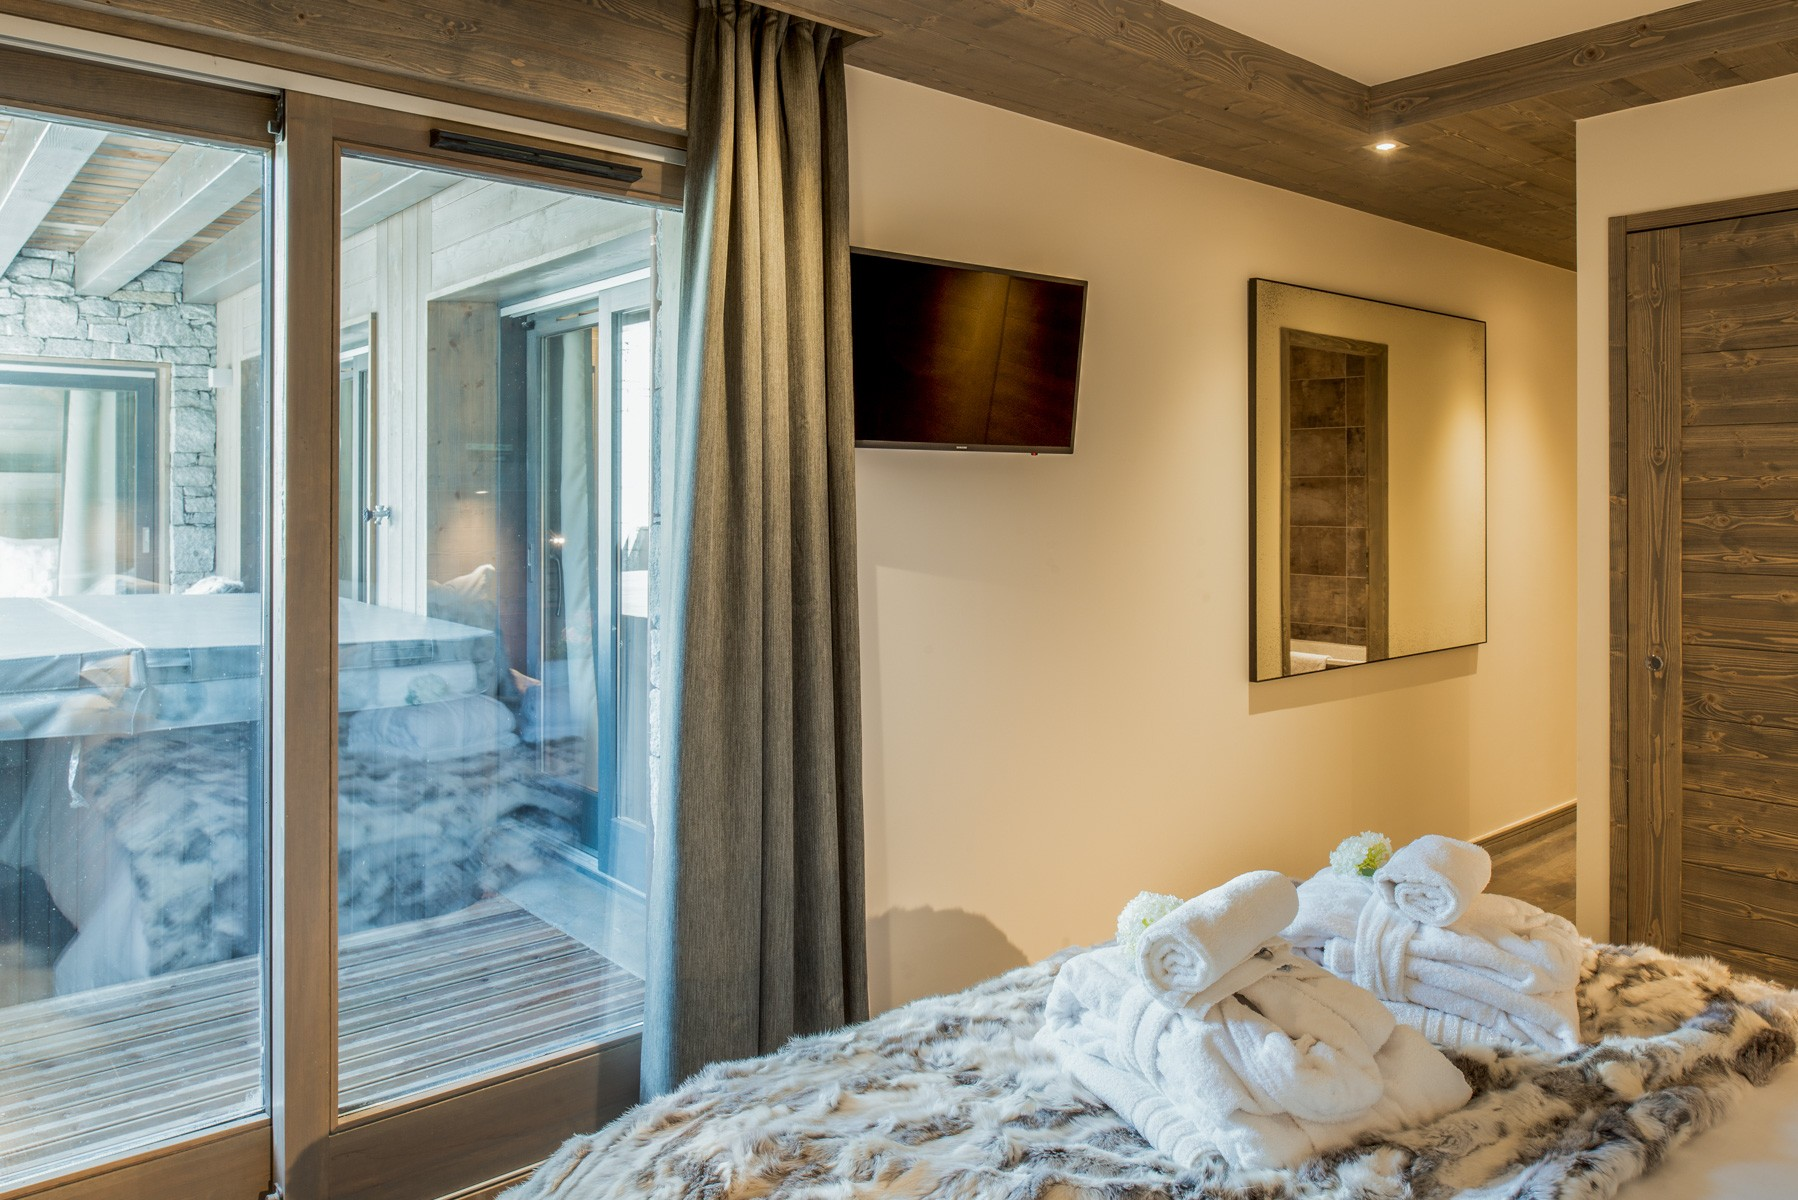 Courchevel 1650 Location Appartement Luxe Amurile Chambre 2